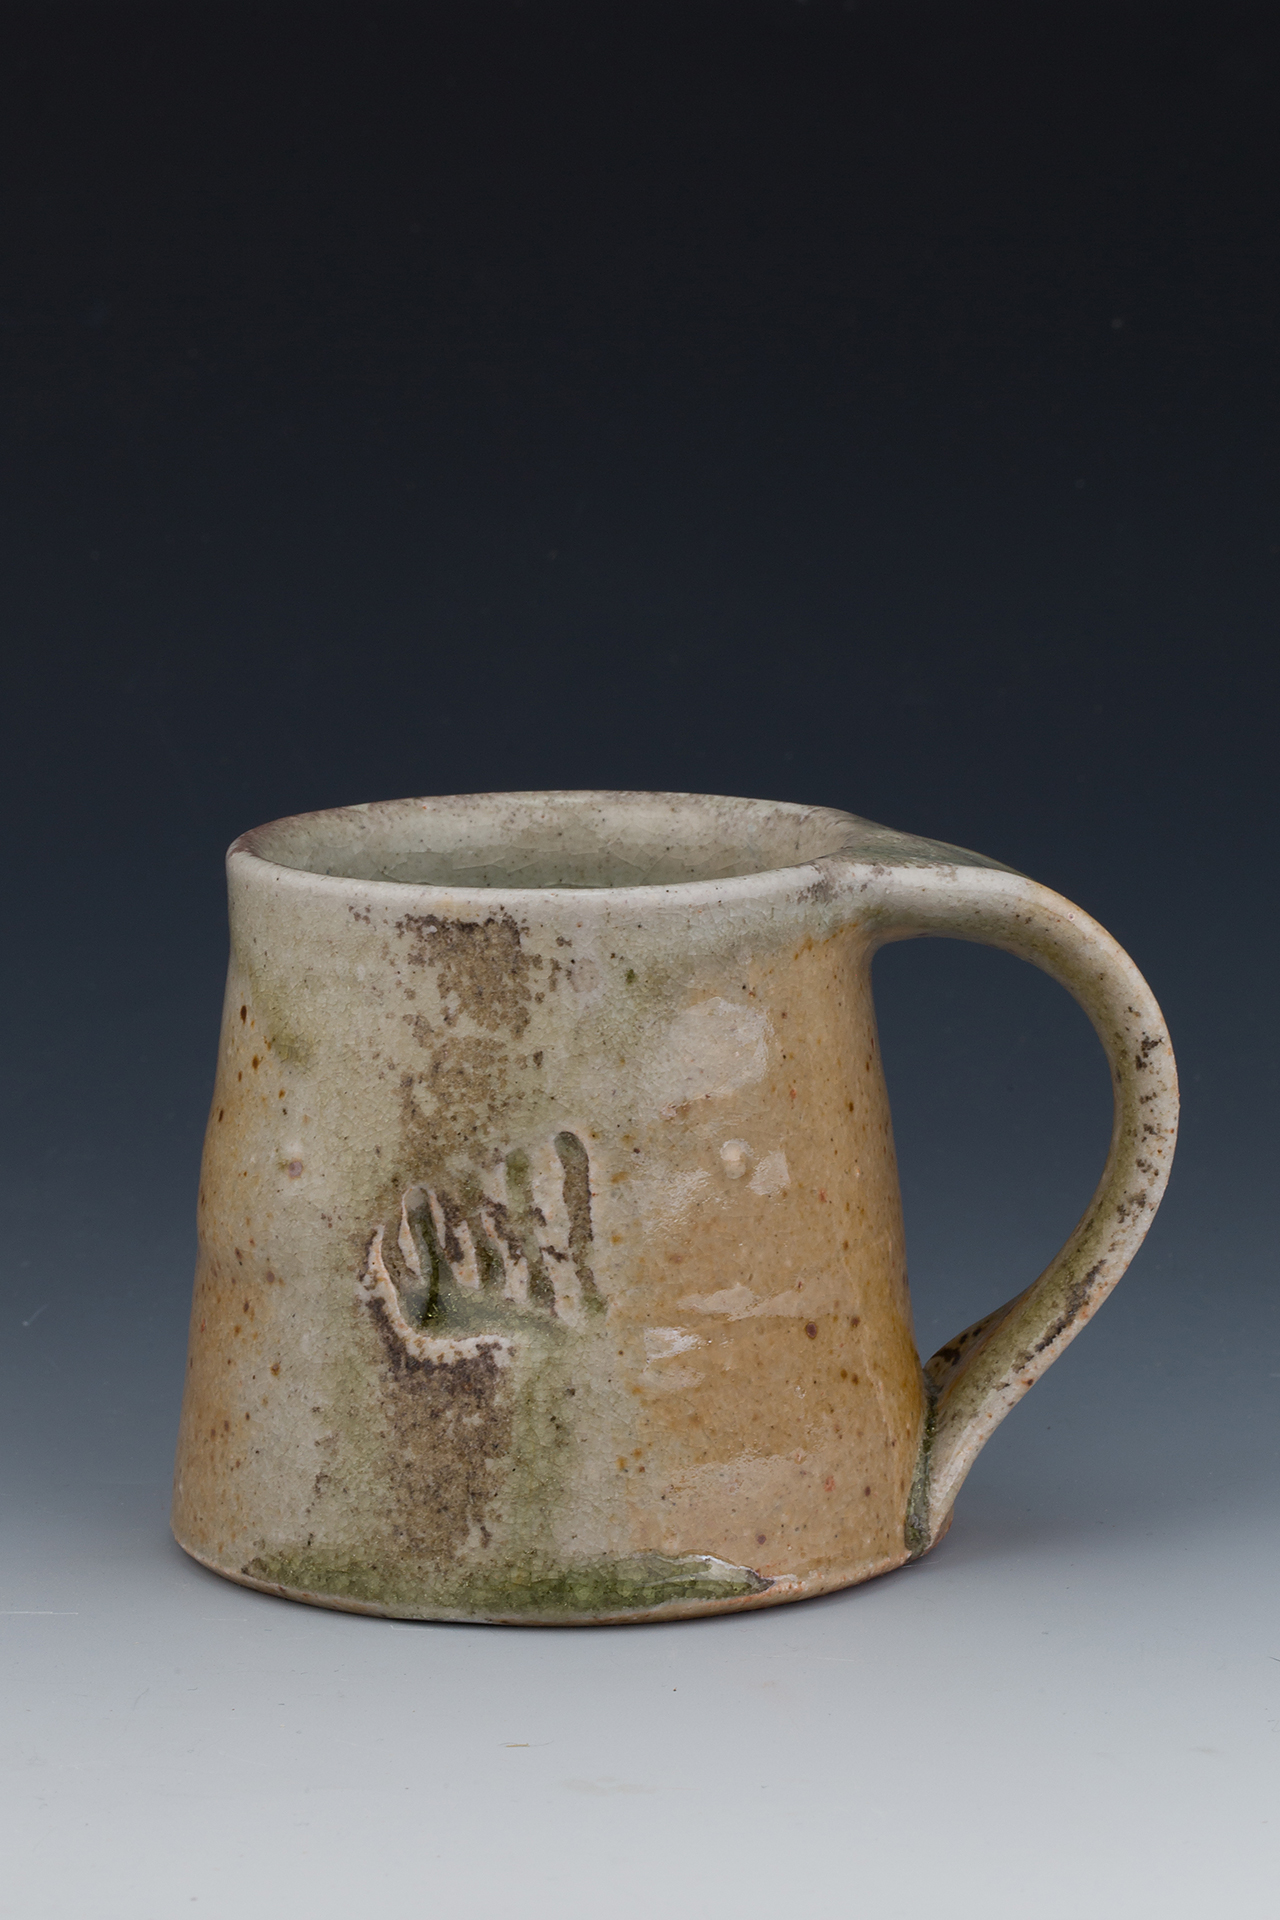 Lovely Ceramic Mugs For Sale Part - 2: Here Are A Couple New Images Of Some Mugs You May See, Snapped By My Friend  Richard Schultz Whose Photography Will Also Be For Sale At TE Studio.